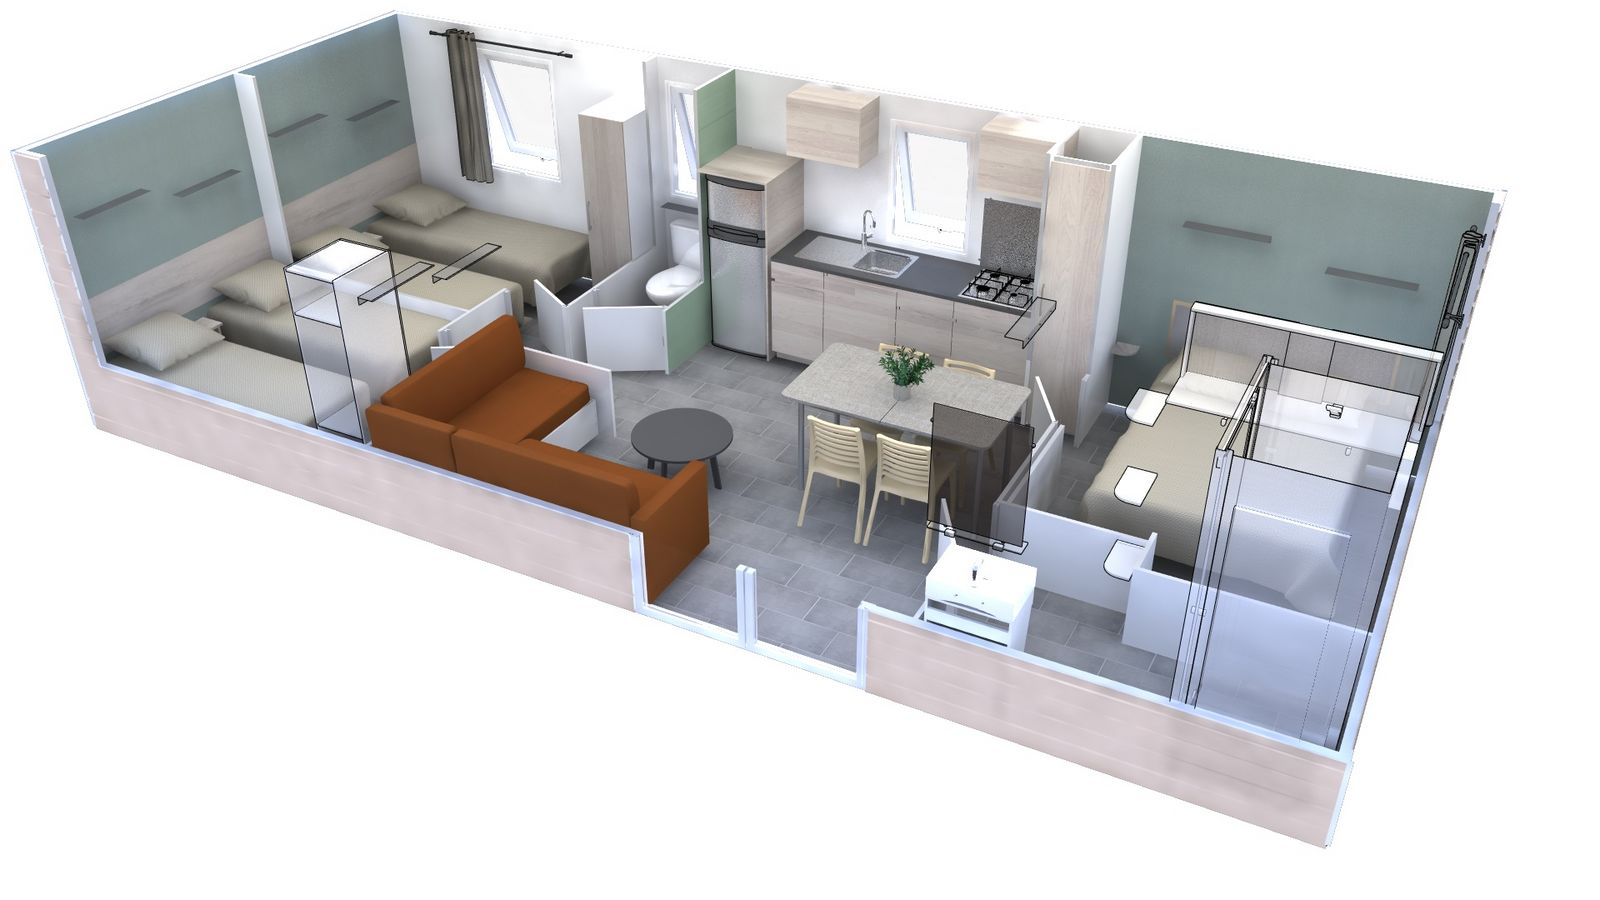 residences-trigano-mobil-home-3chambres-evolution35-plan-3D